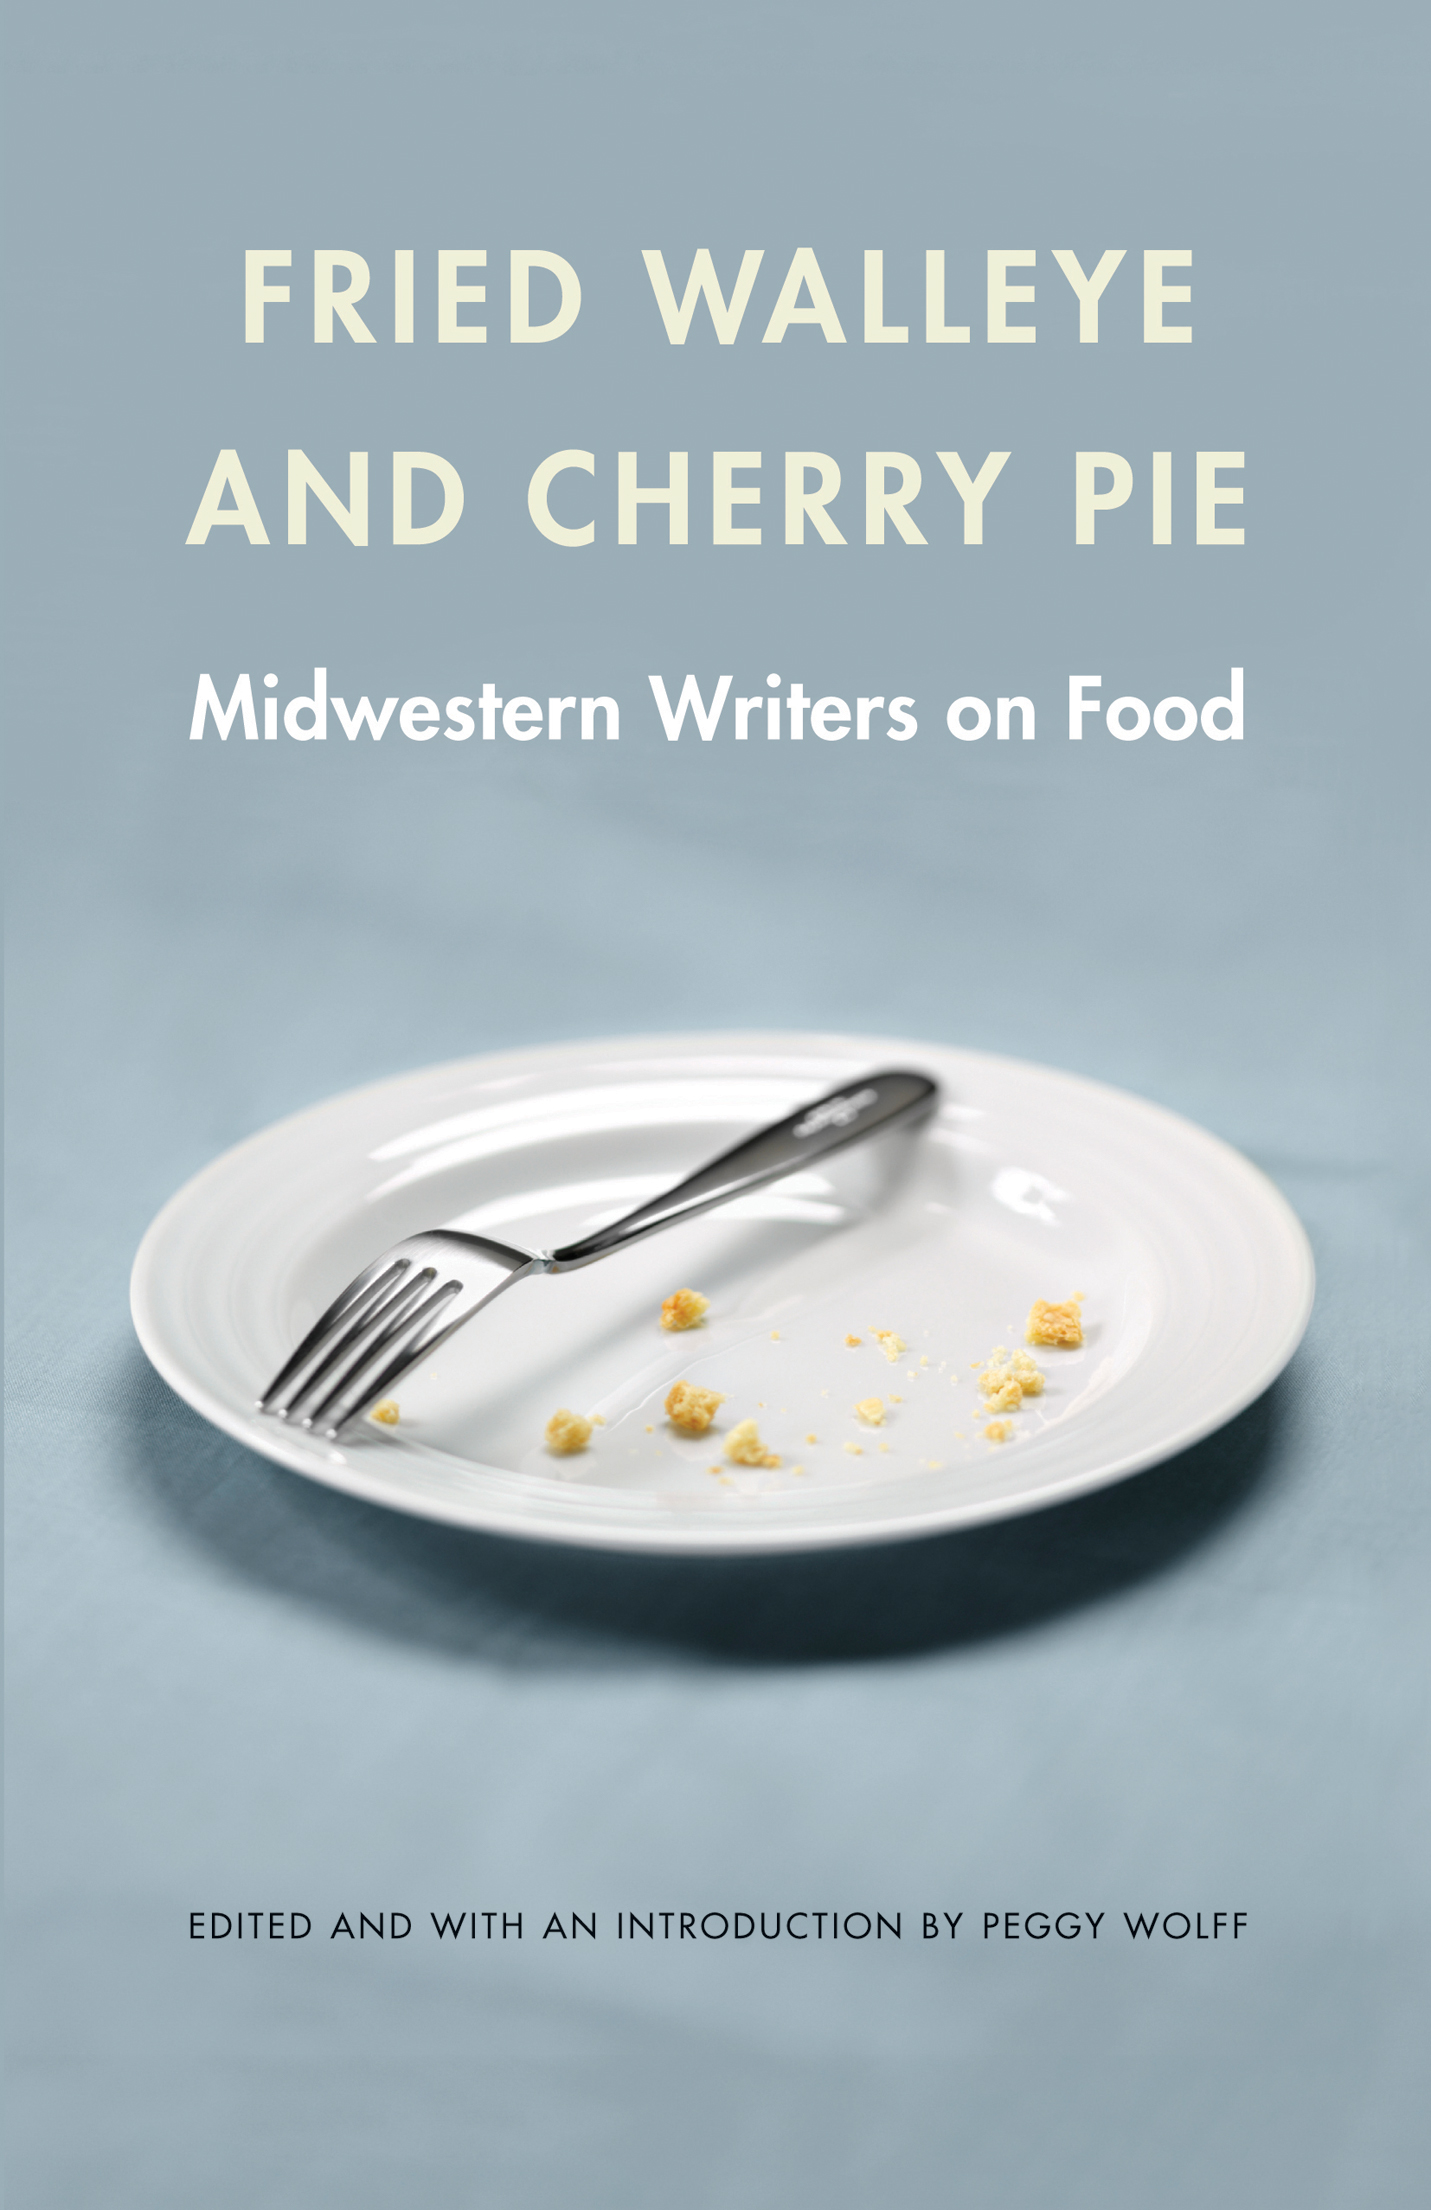 "Fried Walleye and Cherry Pie ""Fried Walleye and Cherry Pie: Midwestern Writers on Food,"" edited by Peggy Wolff."